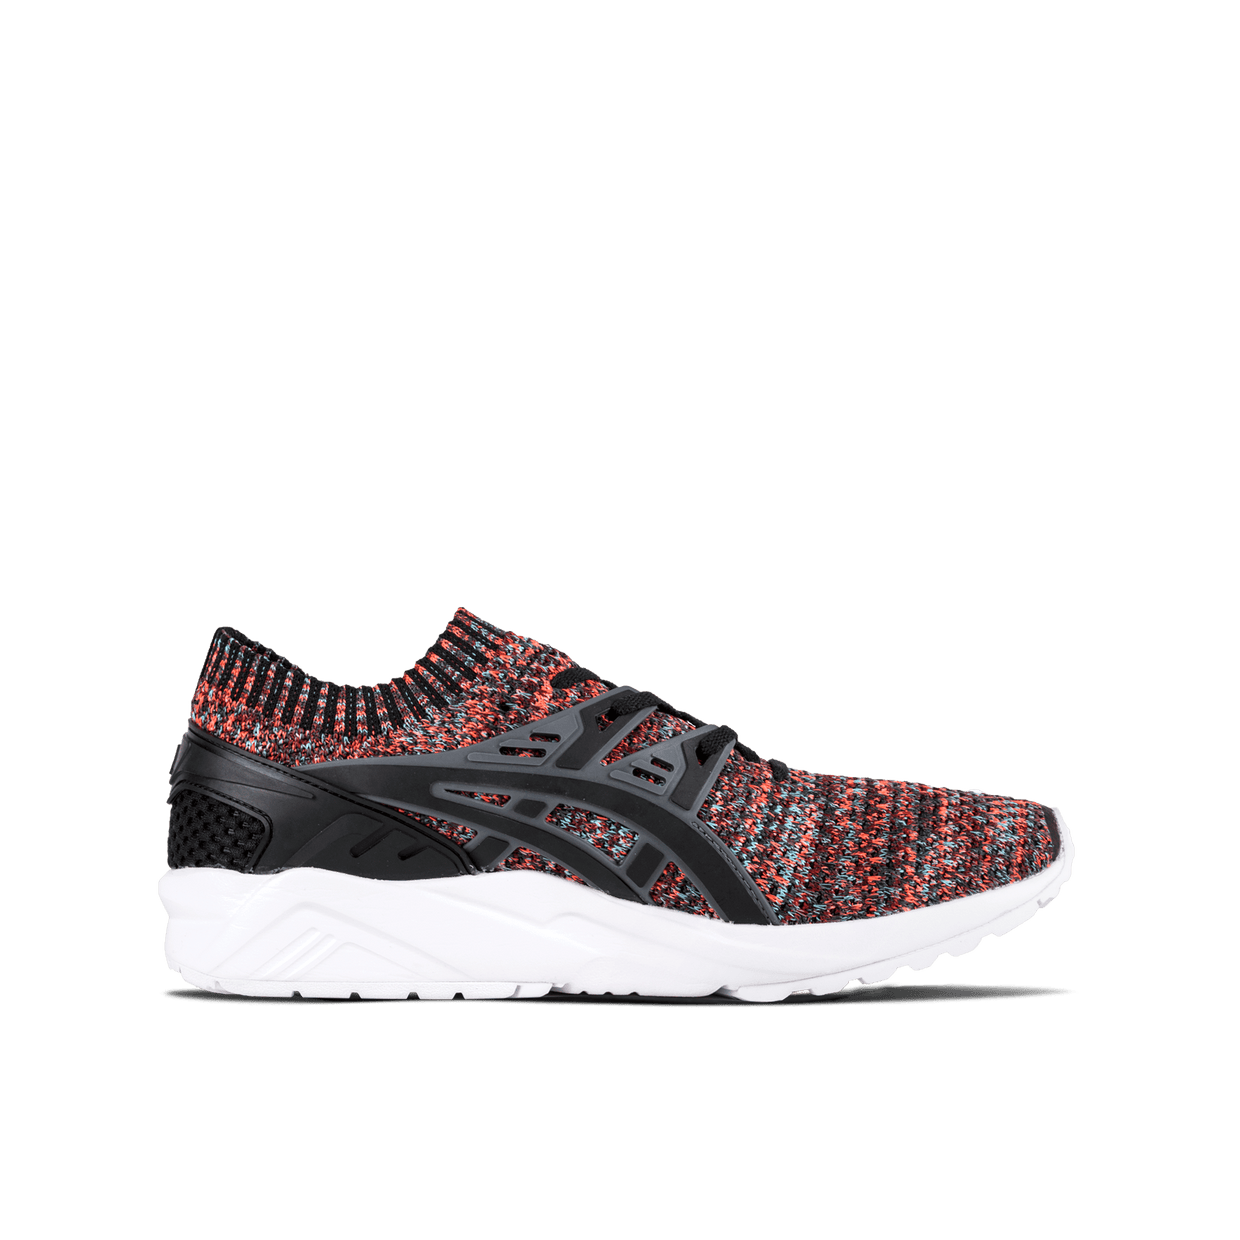 Gel-Kayano Trainer Knit - Red/Black